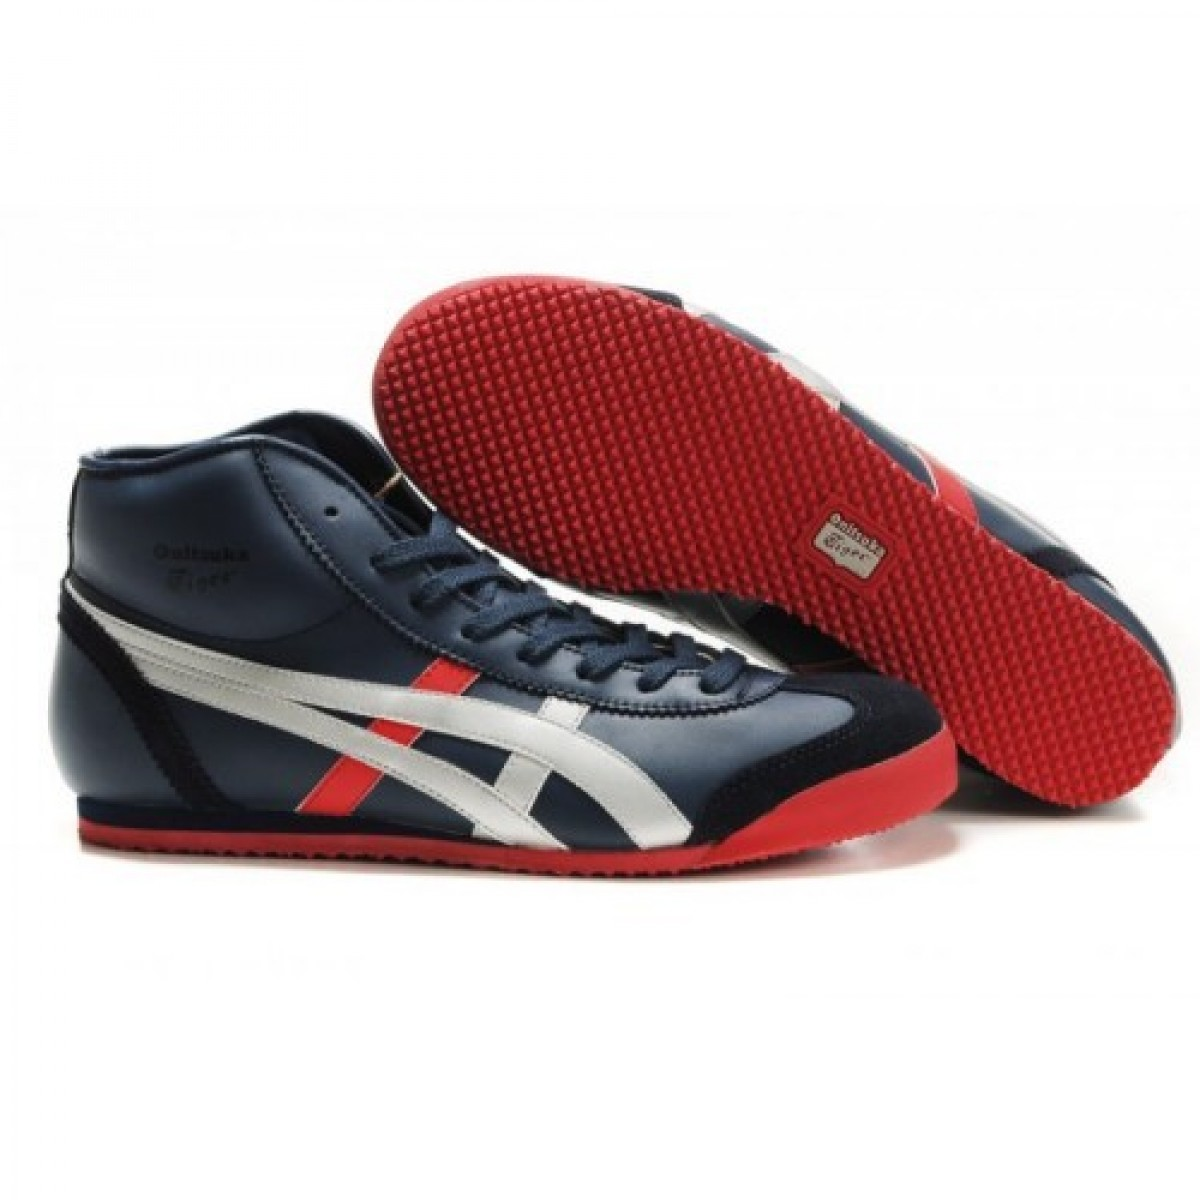 asics mexico soldes